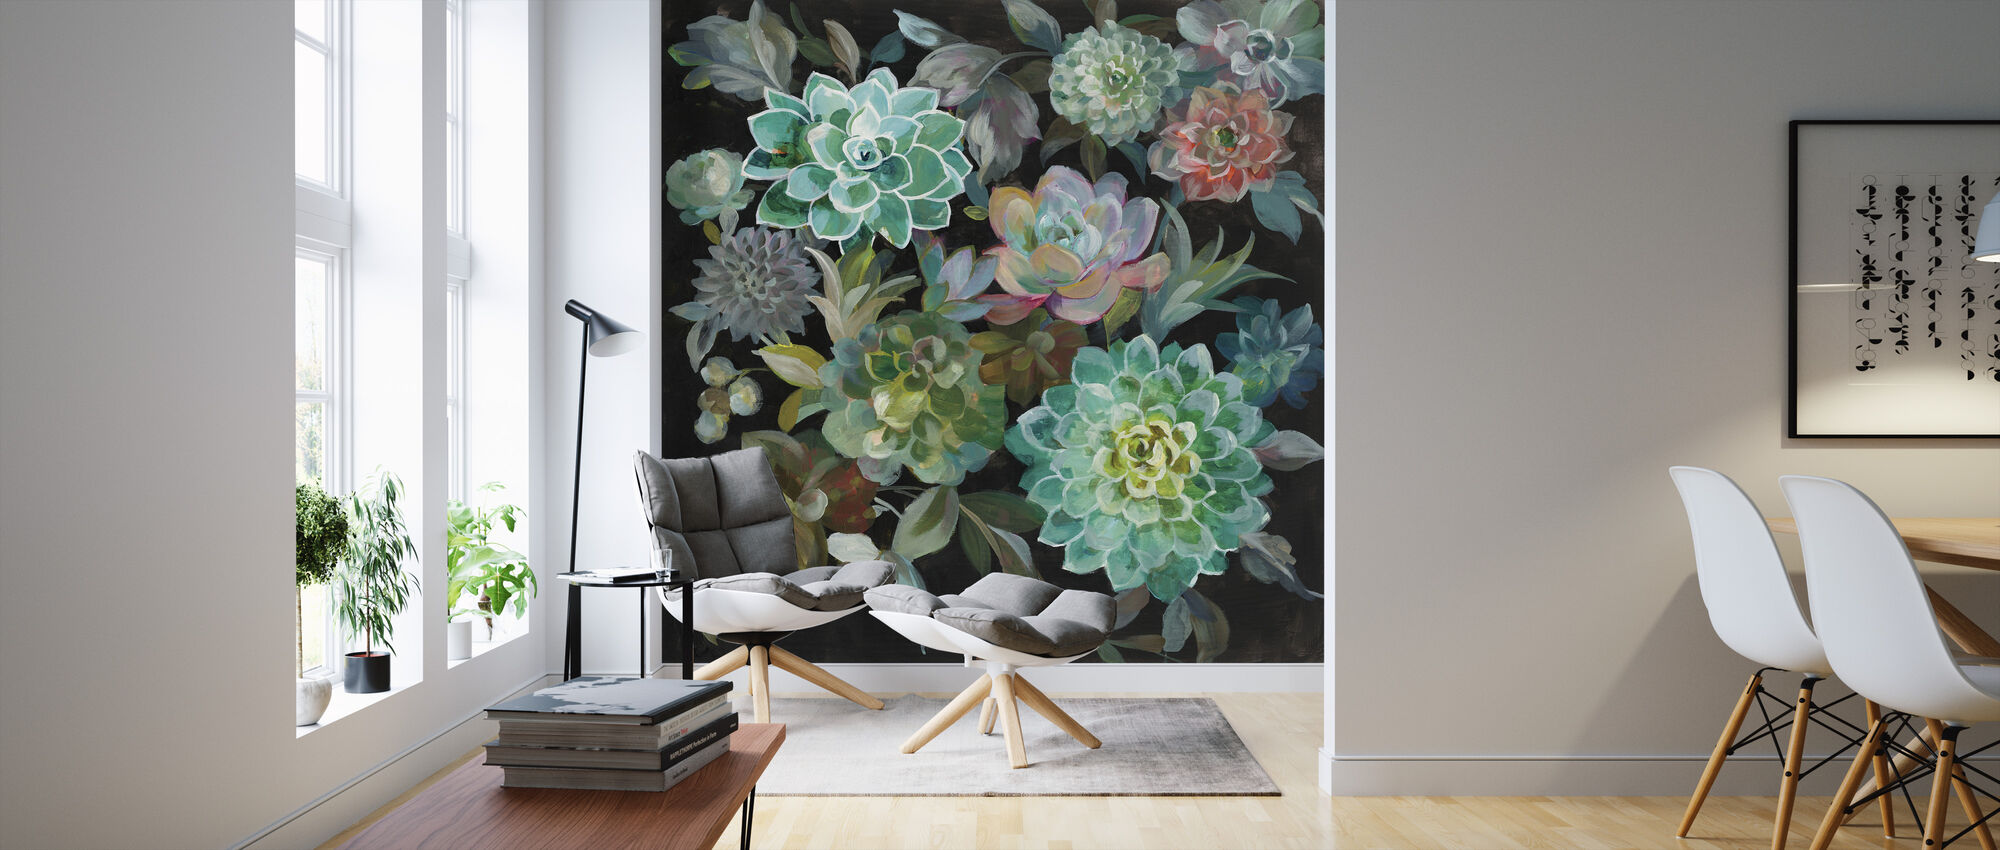 Floral Succulents - Wallpaper - Living Room